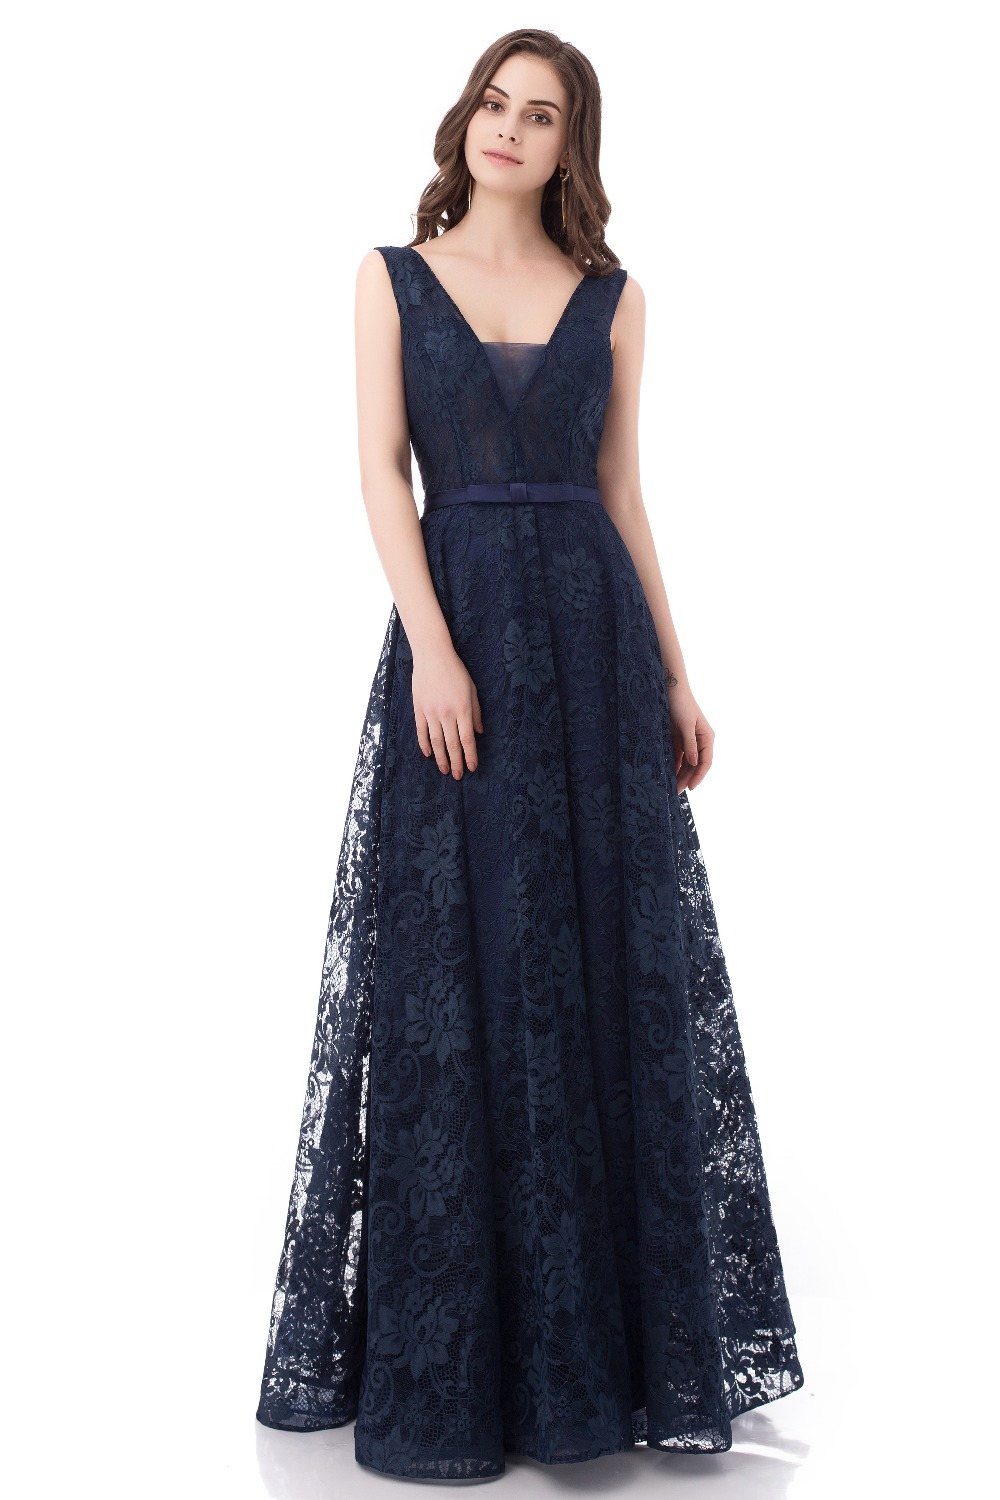 Aliexpress.com : Buy Navy Blue Lace Evening Dresses Long 2018 V Neck ...